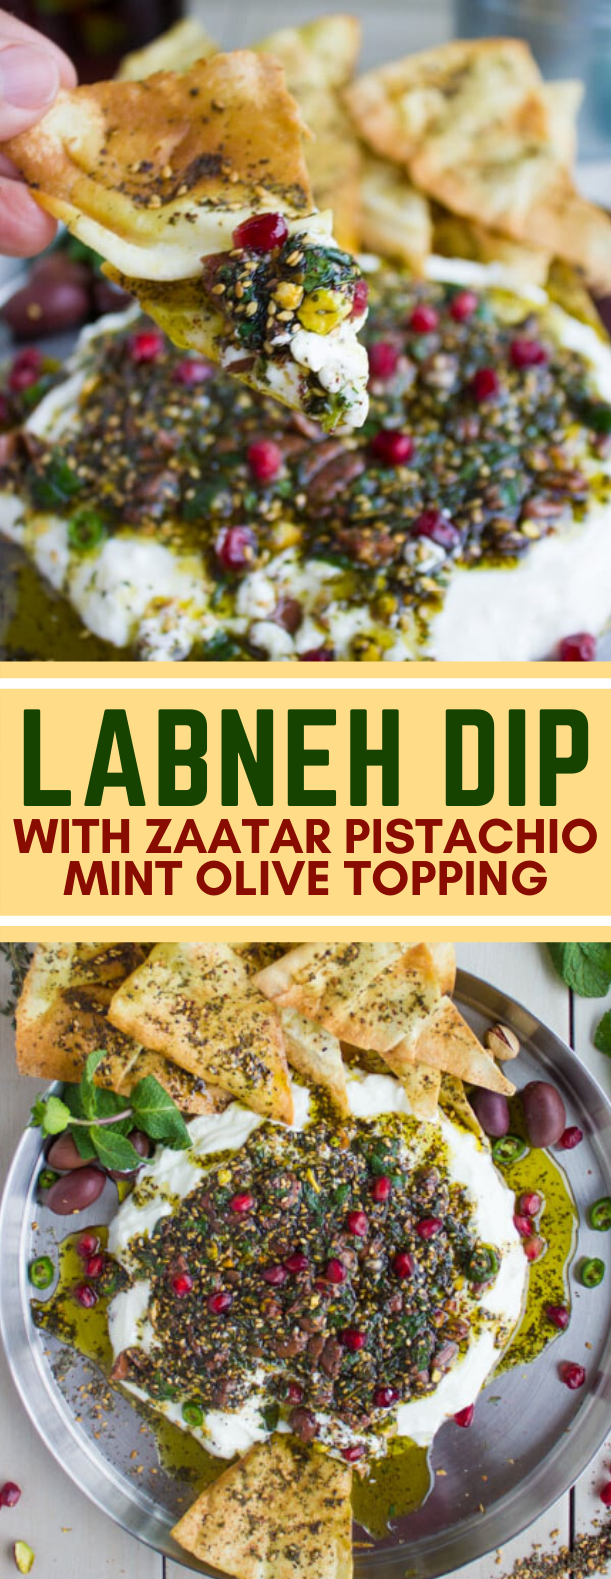 LABNEH DIP WITH ZAATAR PISTACHIO MINT OLIVE TOPPING #appetizers #brunch #dip #lunch #recipes